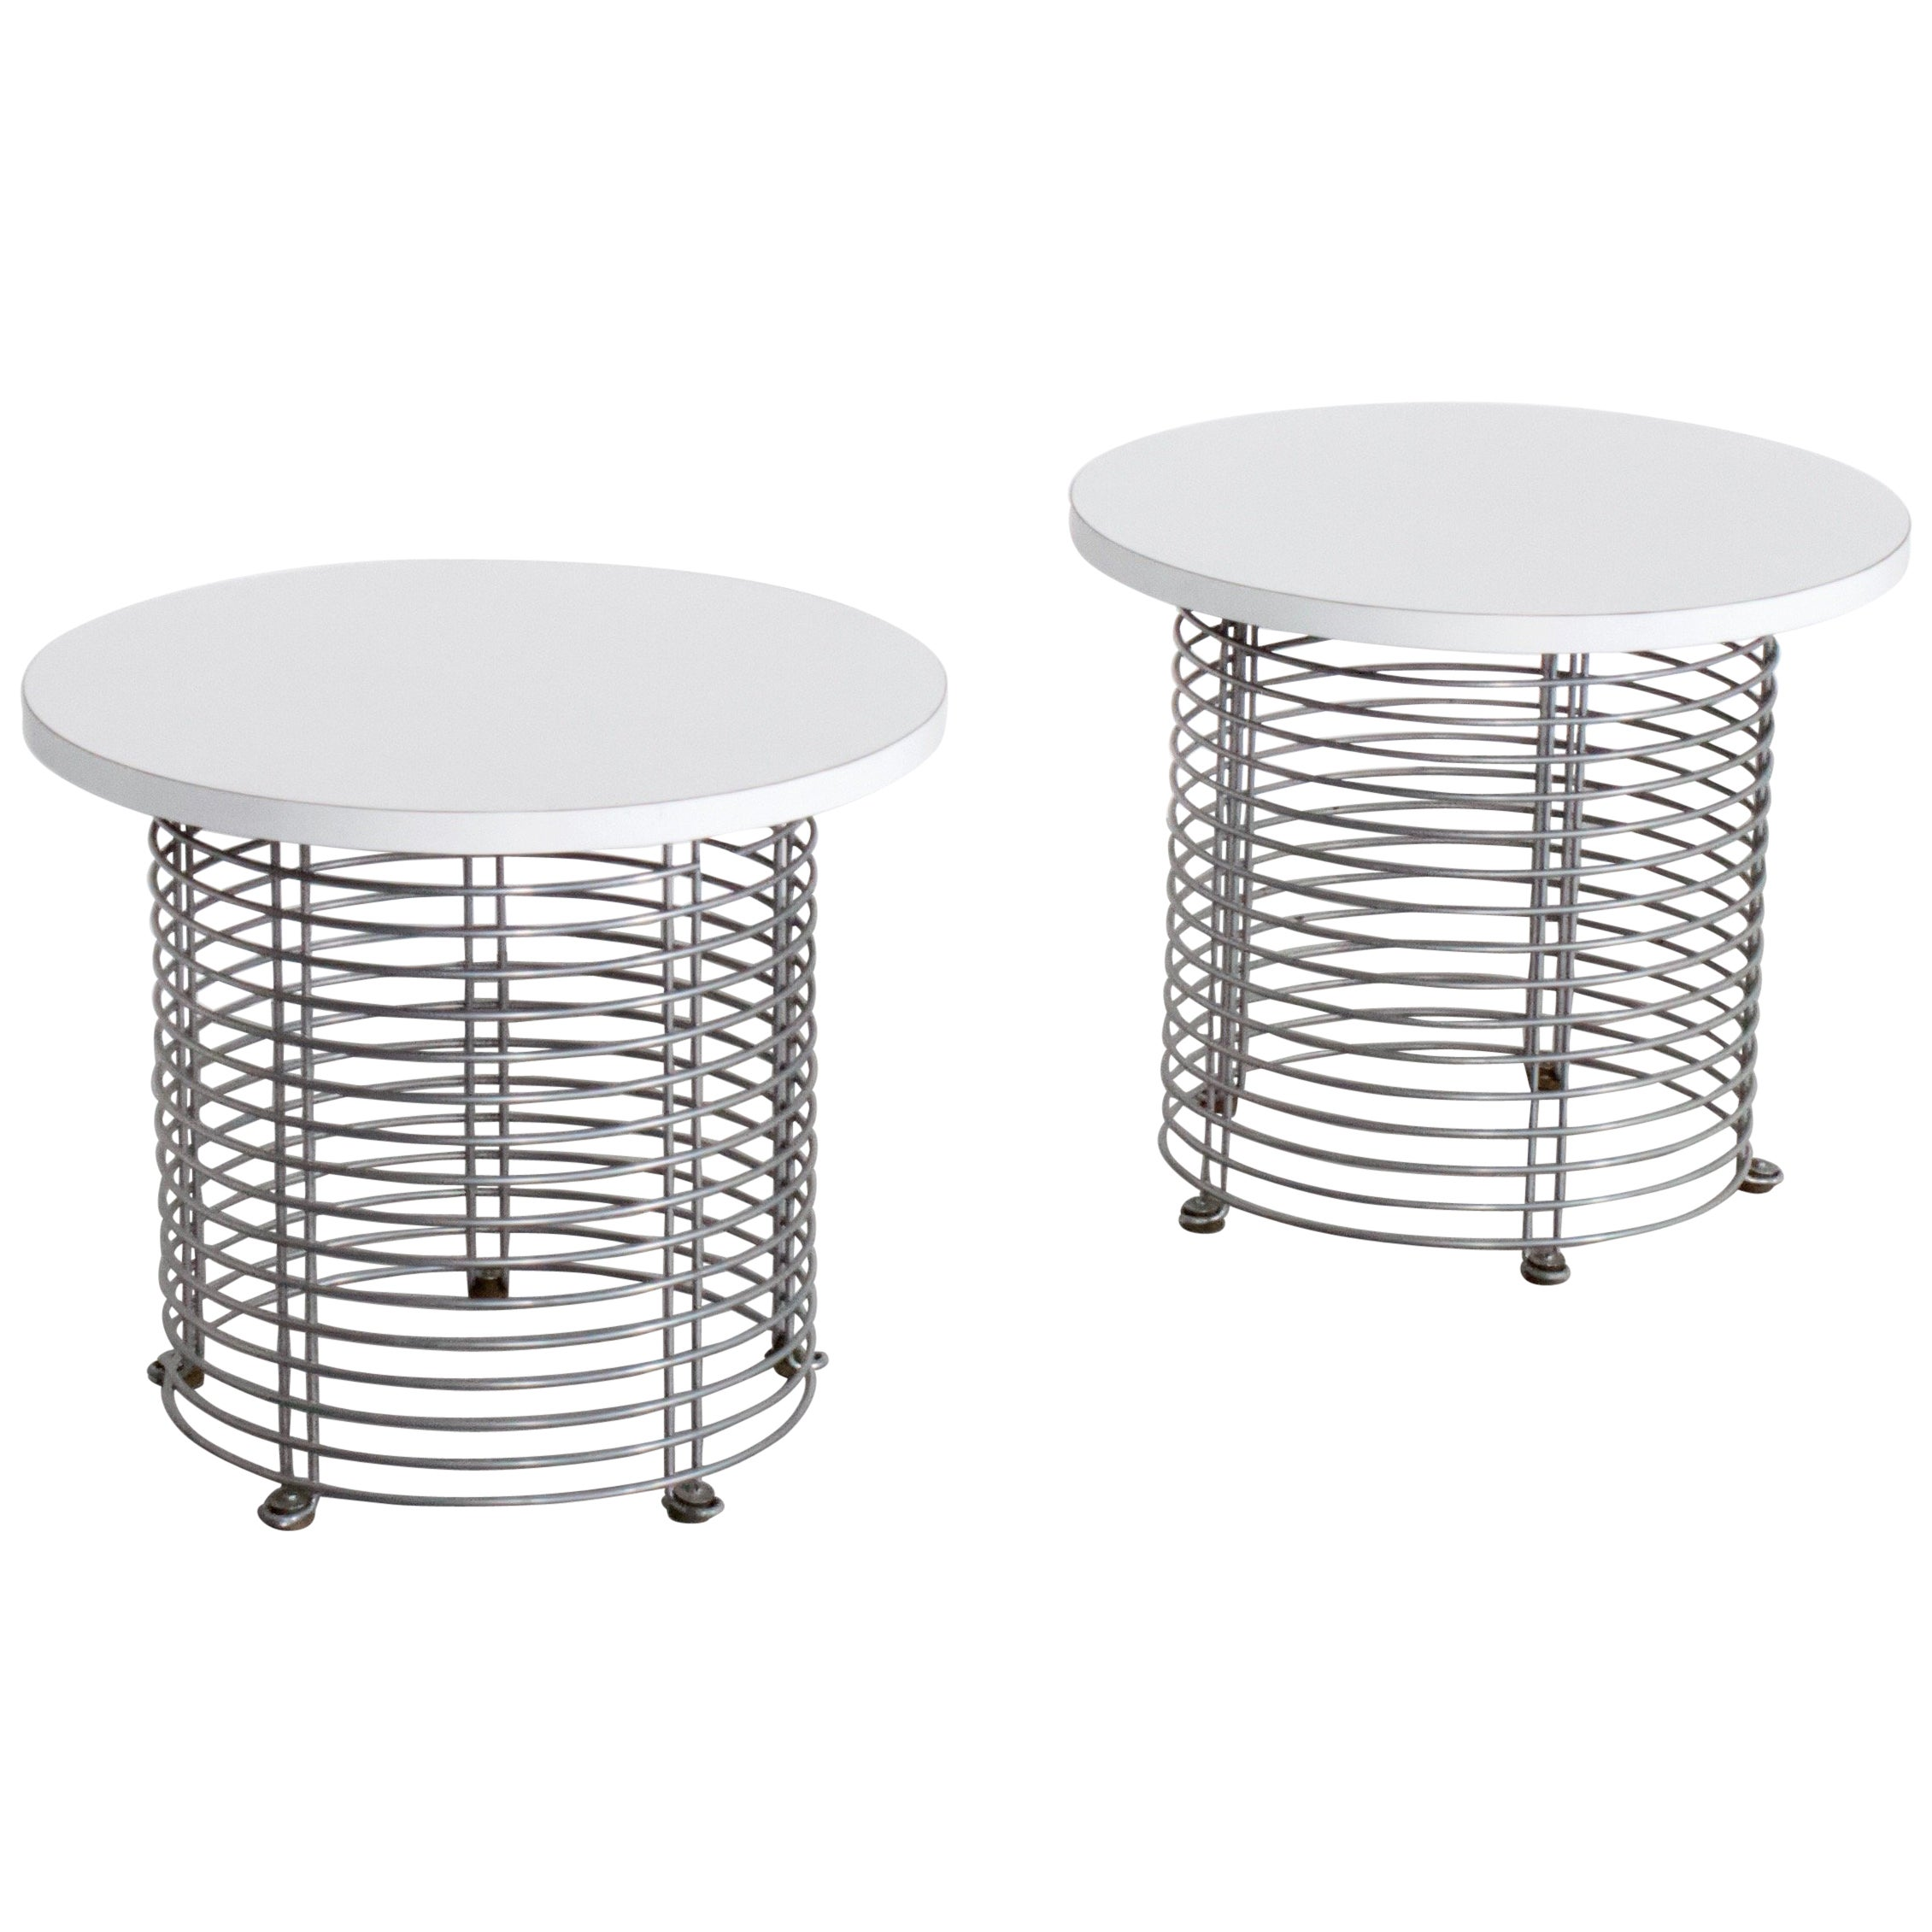 Set of Two 'Pantonova' Wire Tables by Verner Panton for Fritz Hansen, 1971